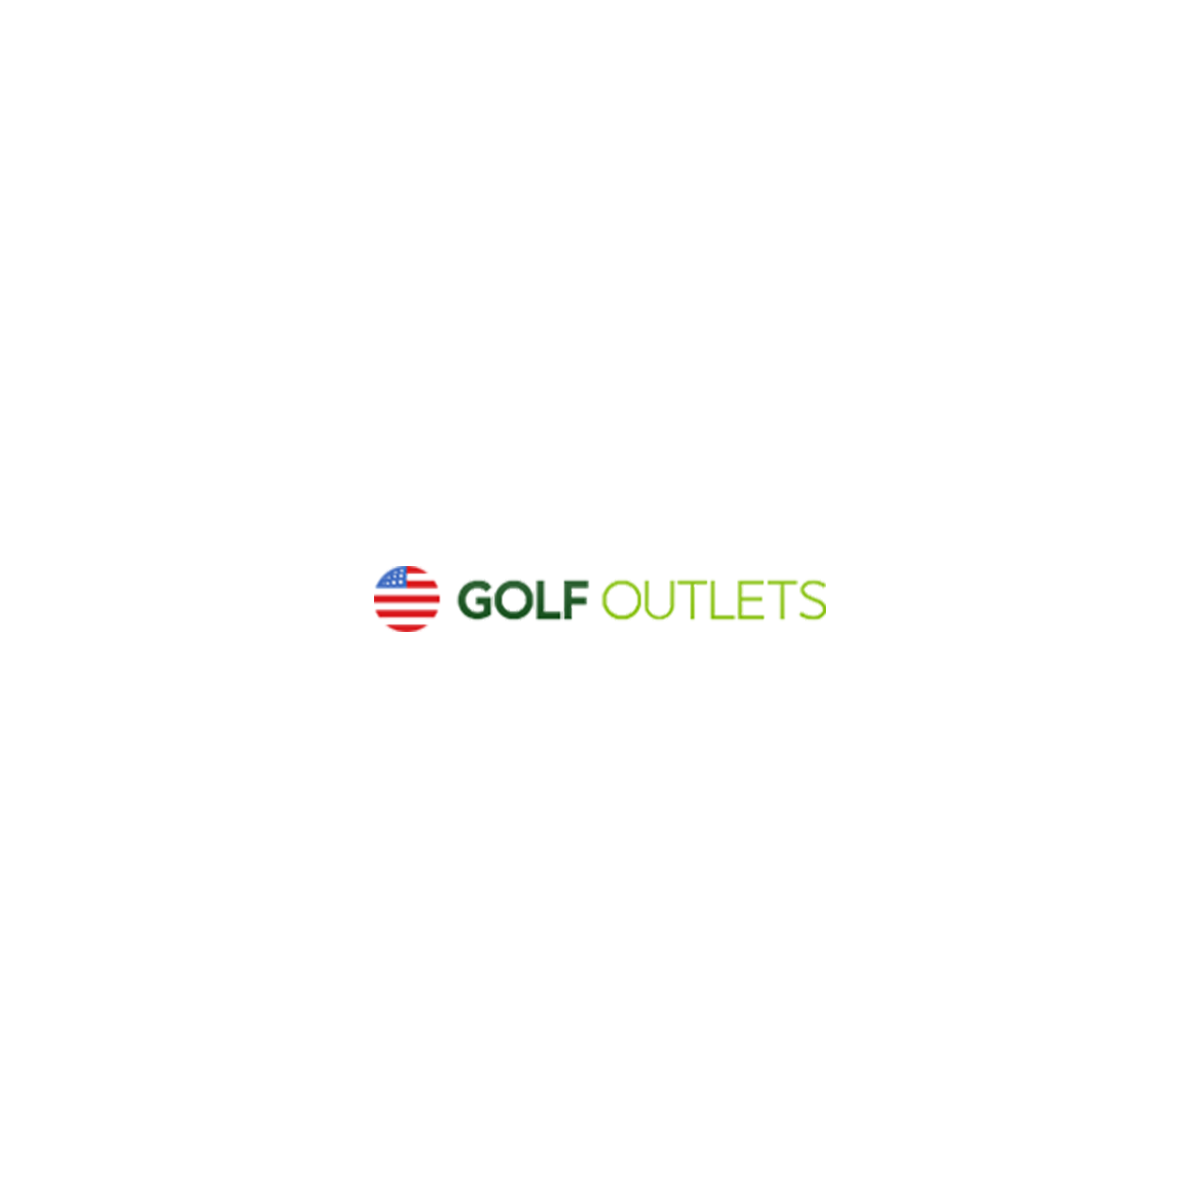 Golf Outlets